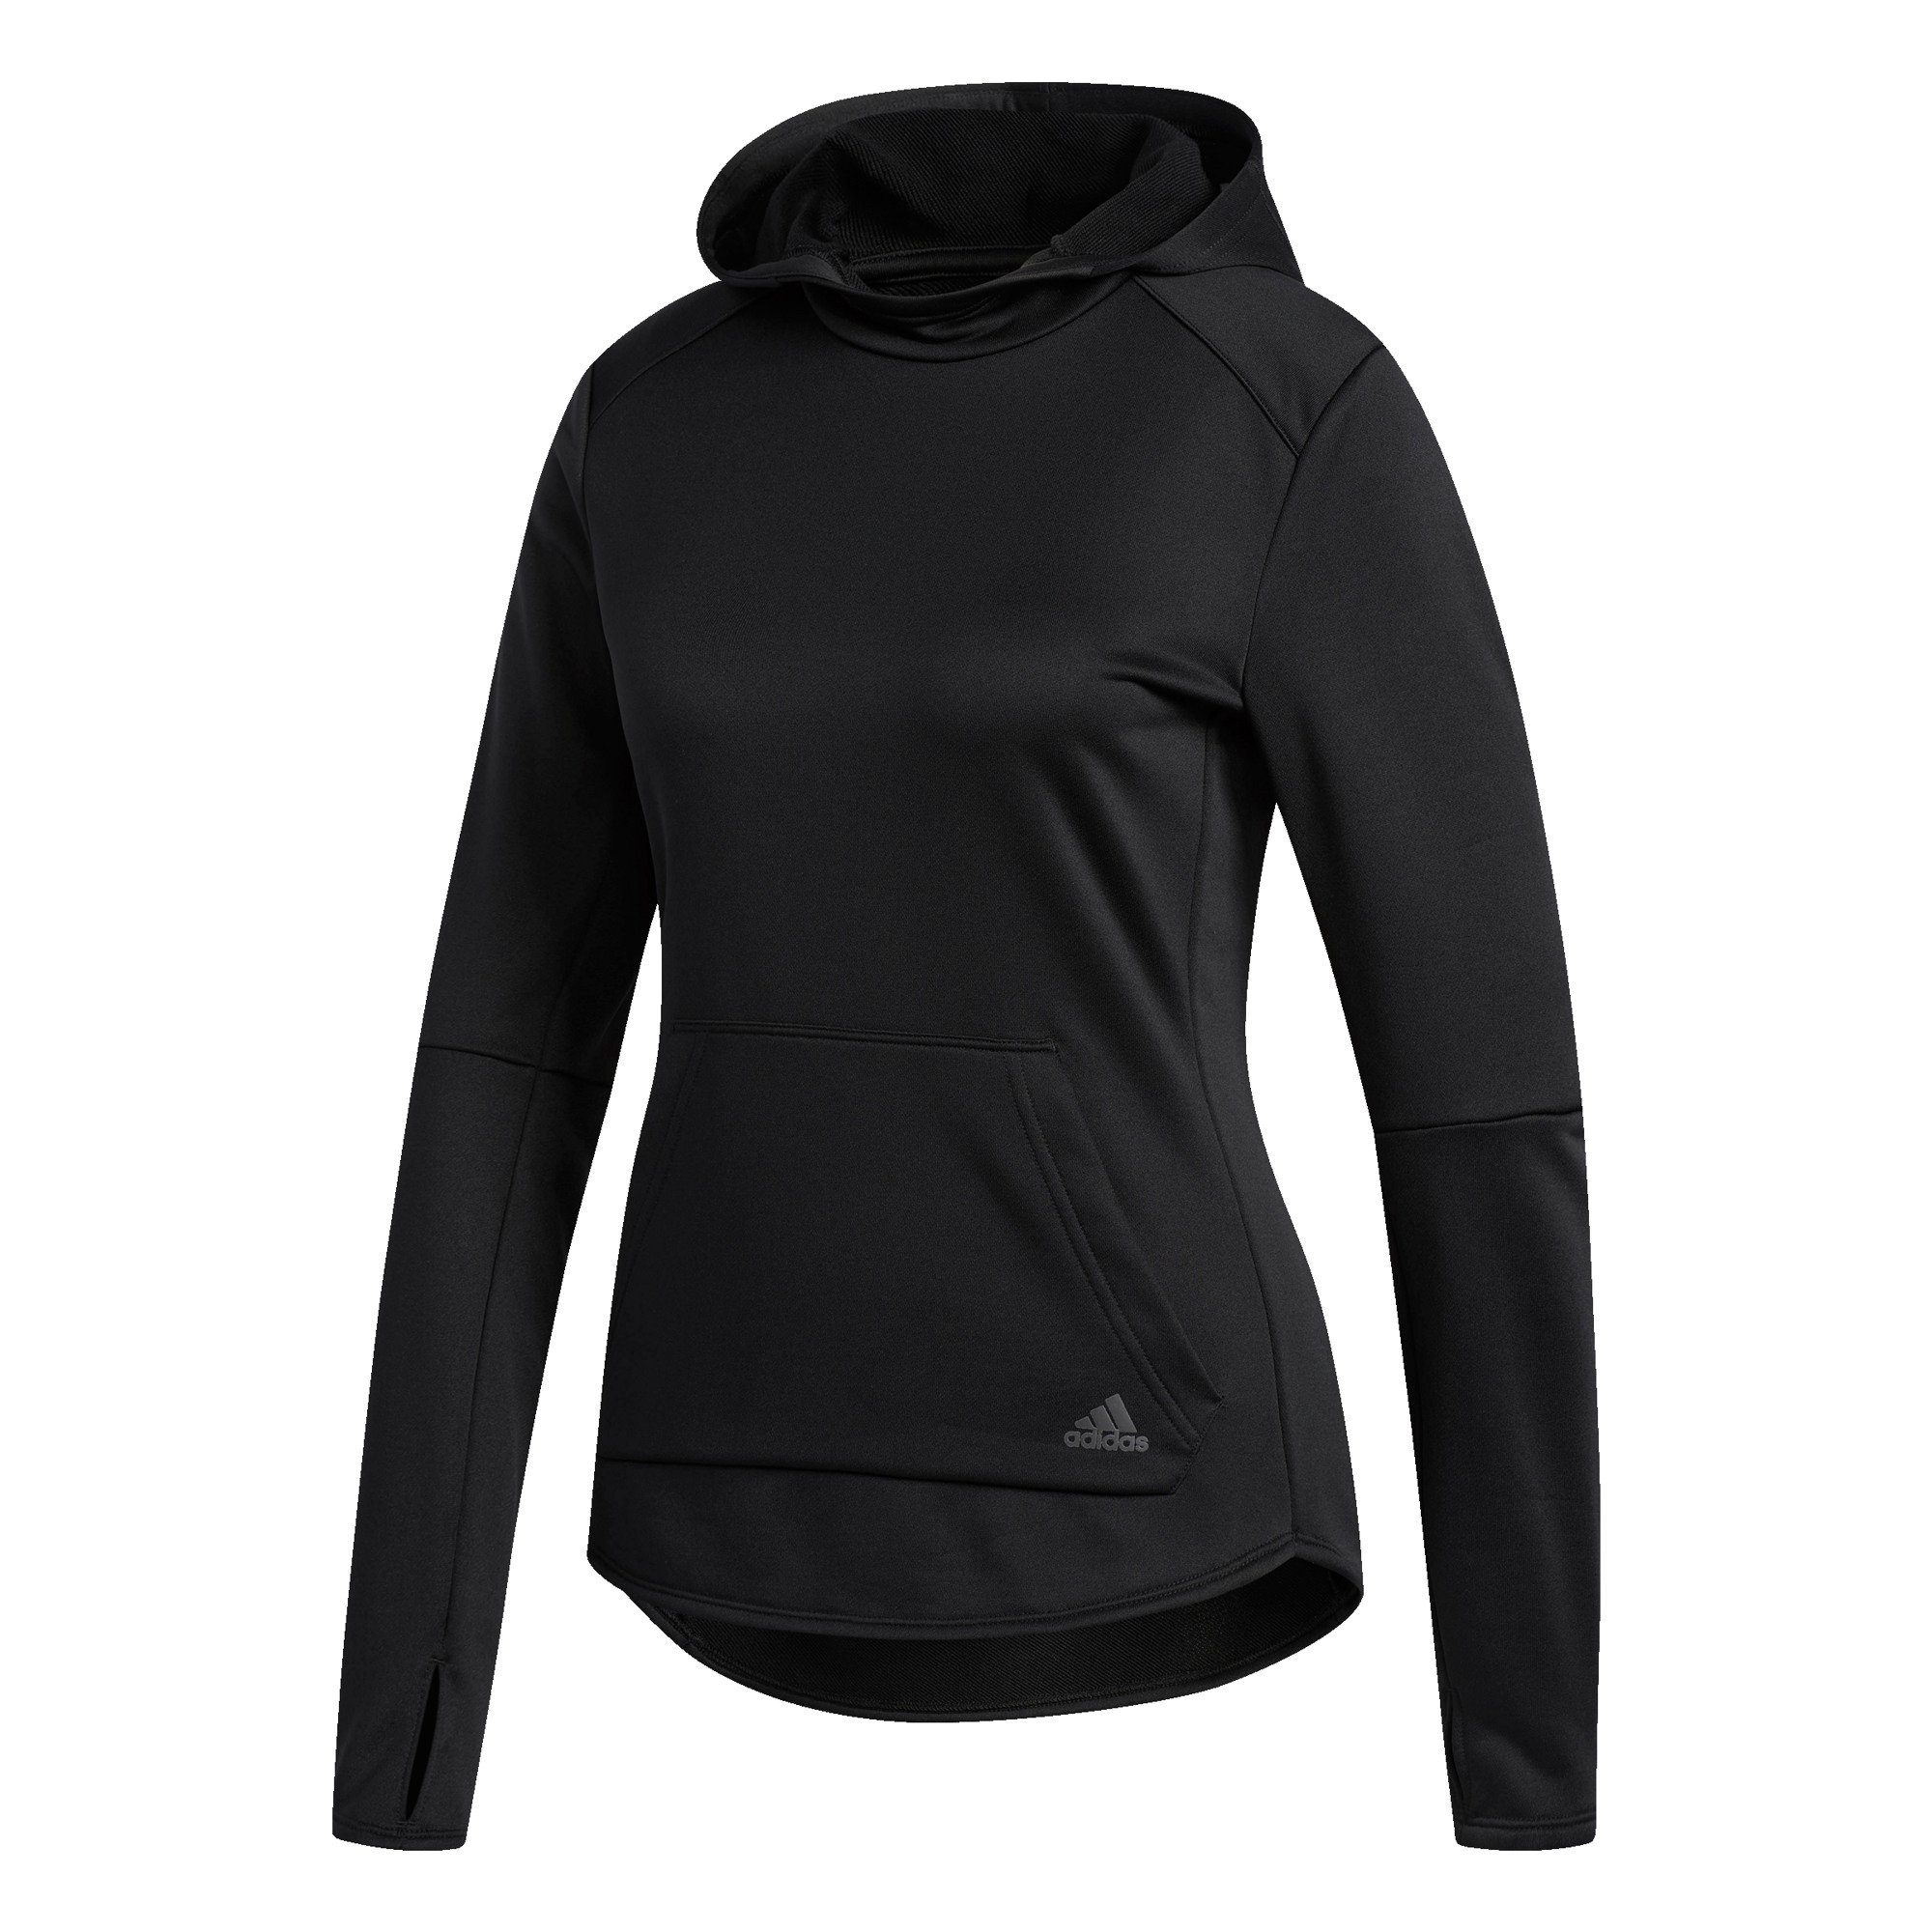 adidas Performance Sweatjacke »Own the Run Hoodie« Response;Clima;READY online kaufen | OTTO